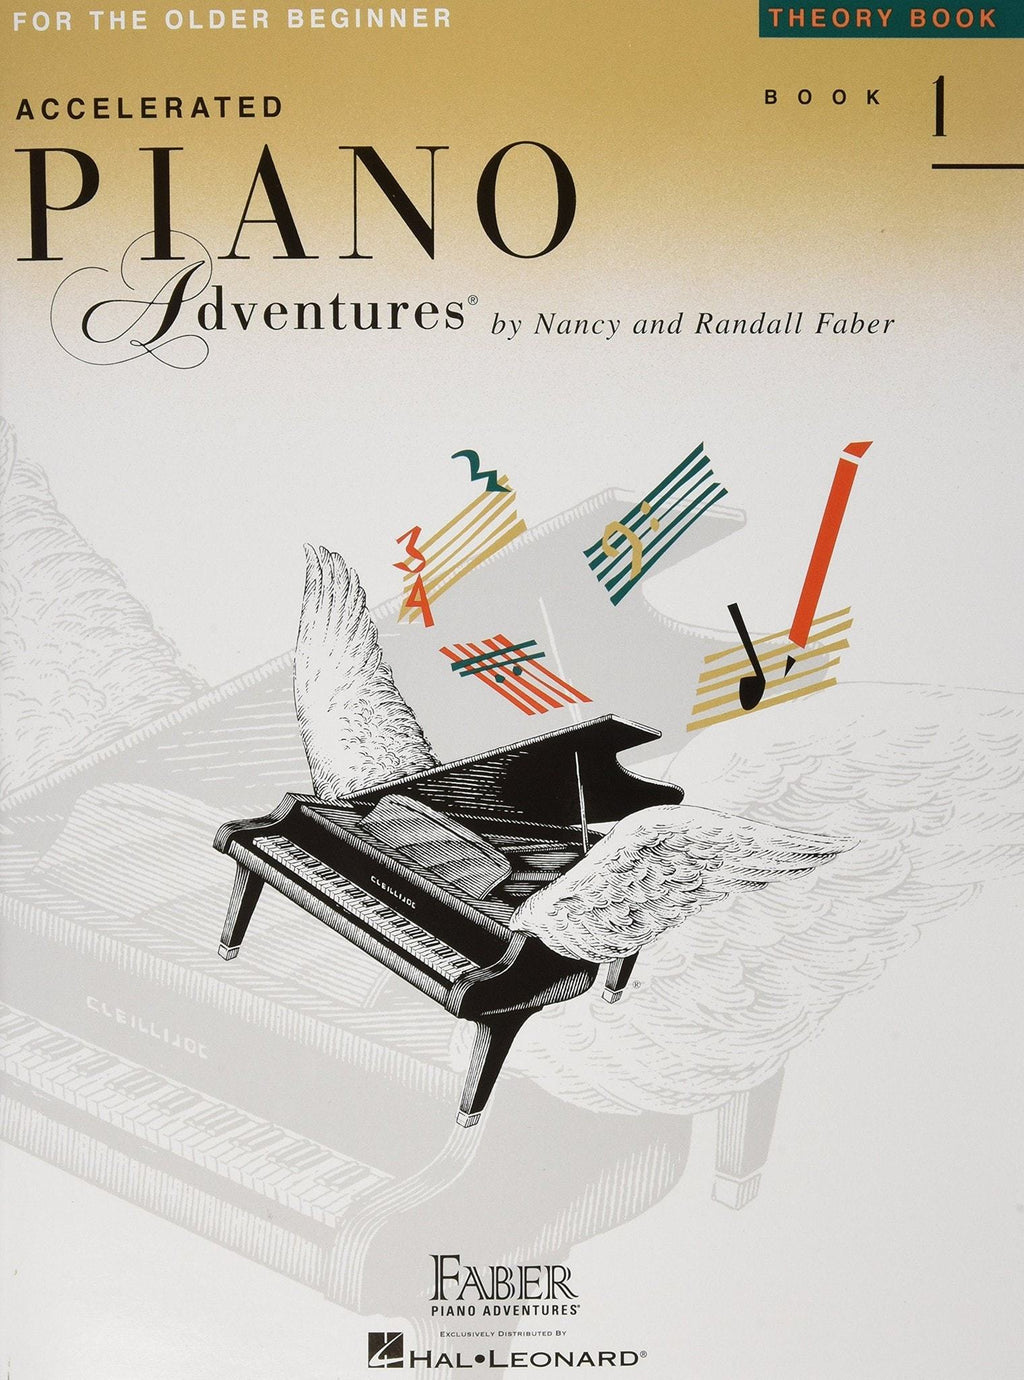 Accelerated Piano Adventures For The Older Beginner | Theory Book 1